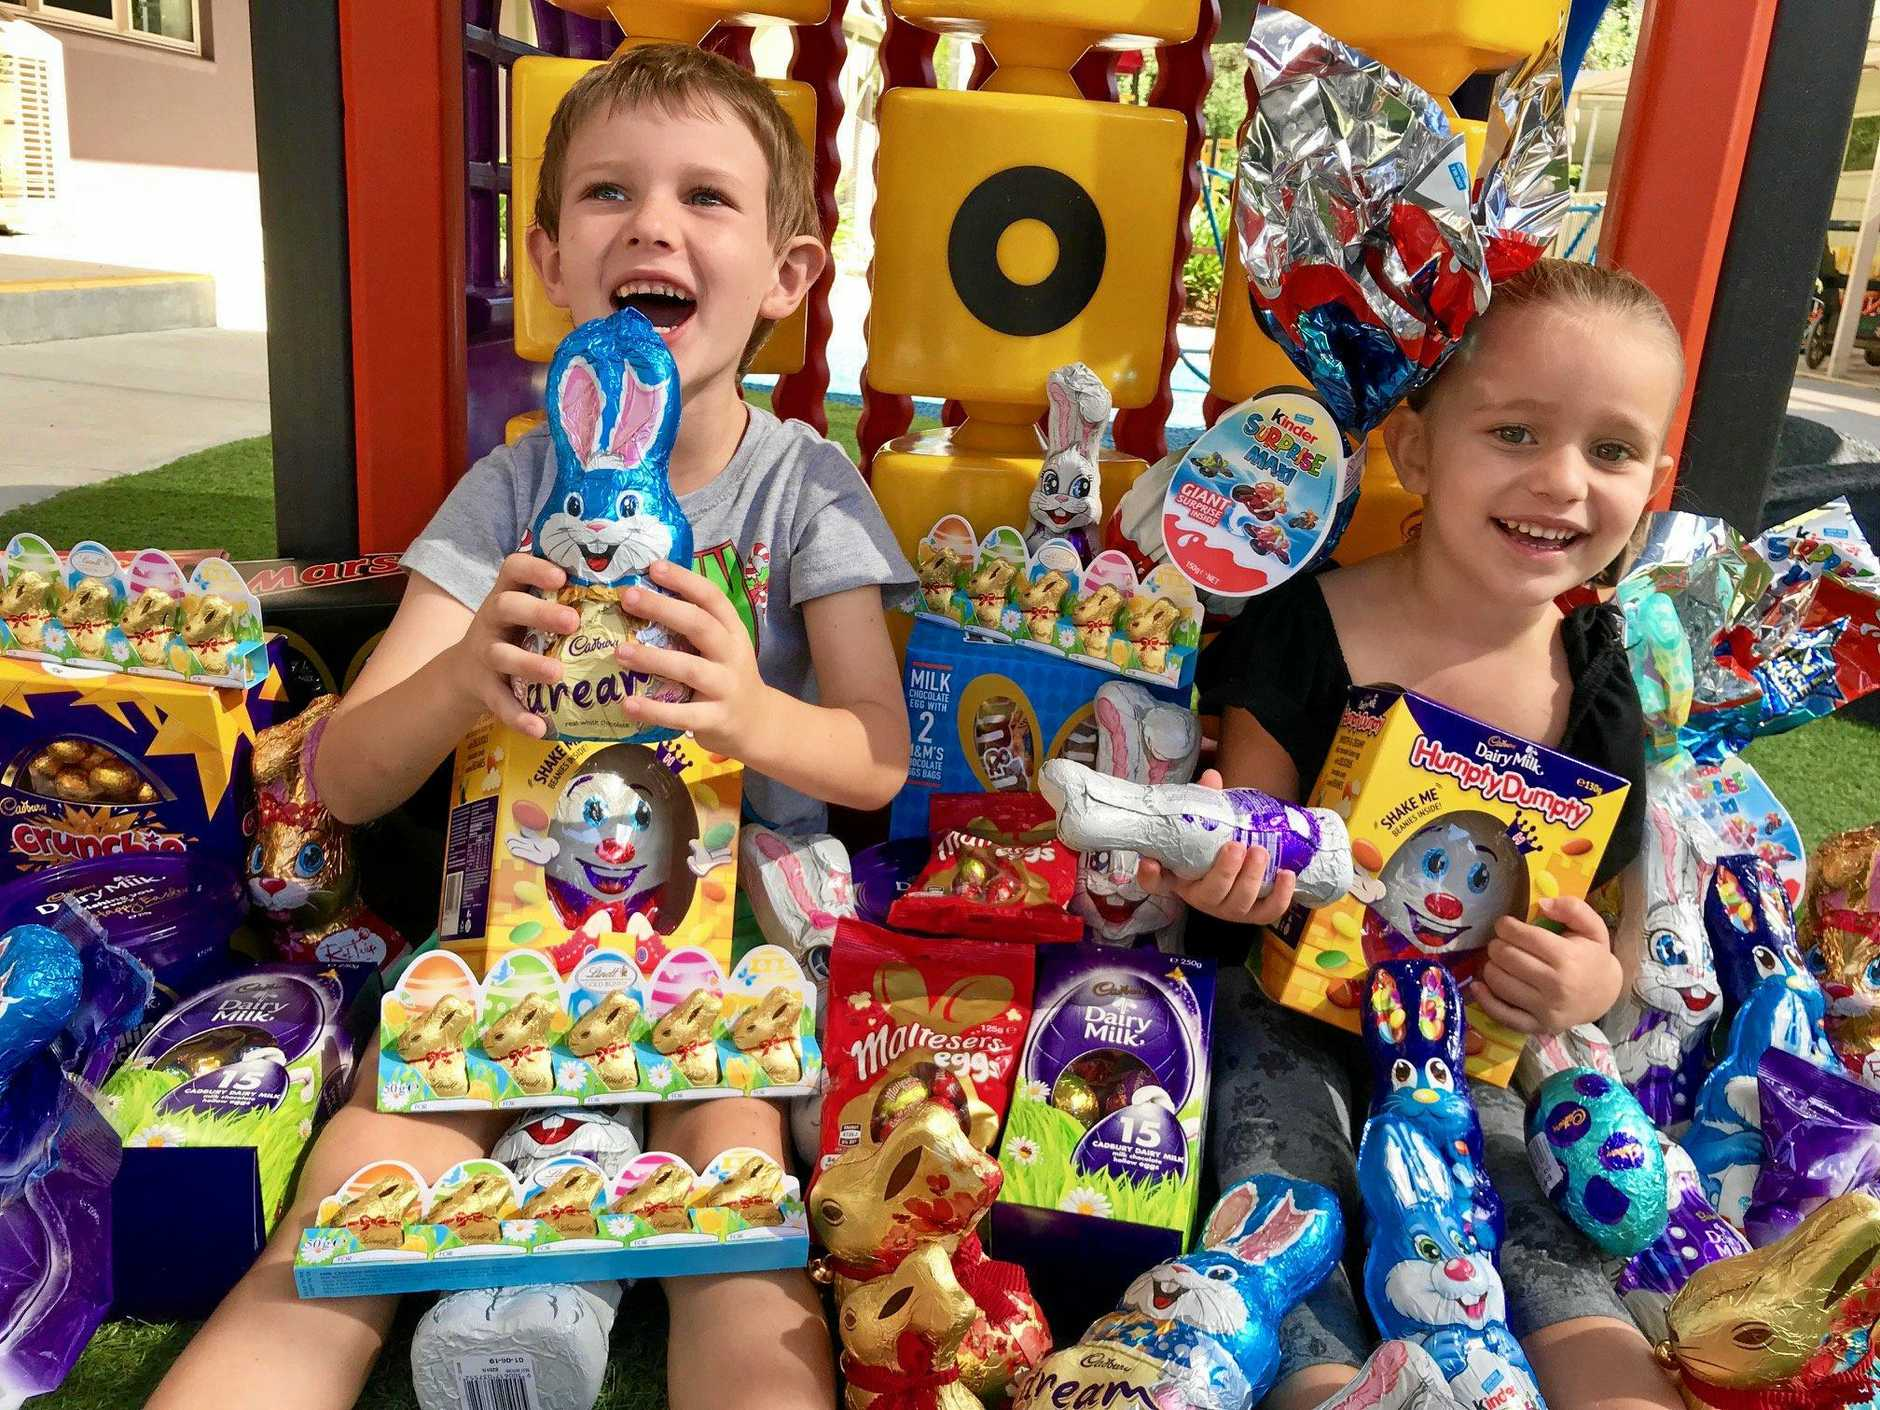 CHOCOLATE OVERLOAD: Zoltan, 5, and Arna-Marie, 3, Slatter were overcome with chocolate gifts at Ronald McDonald House North Queensland.